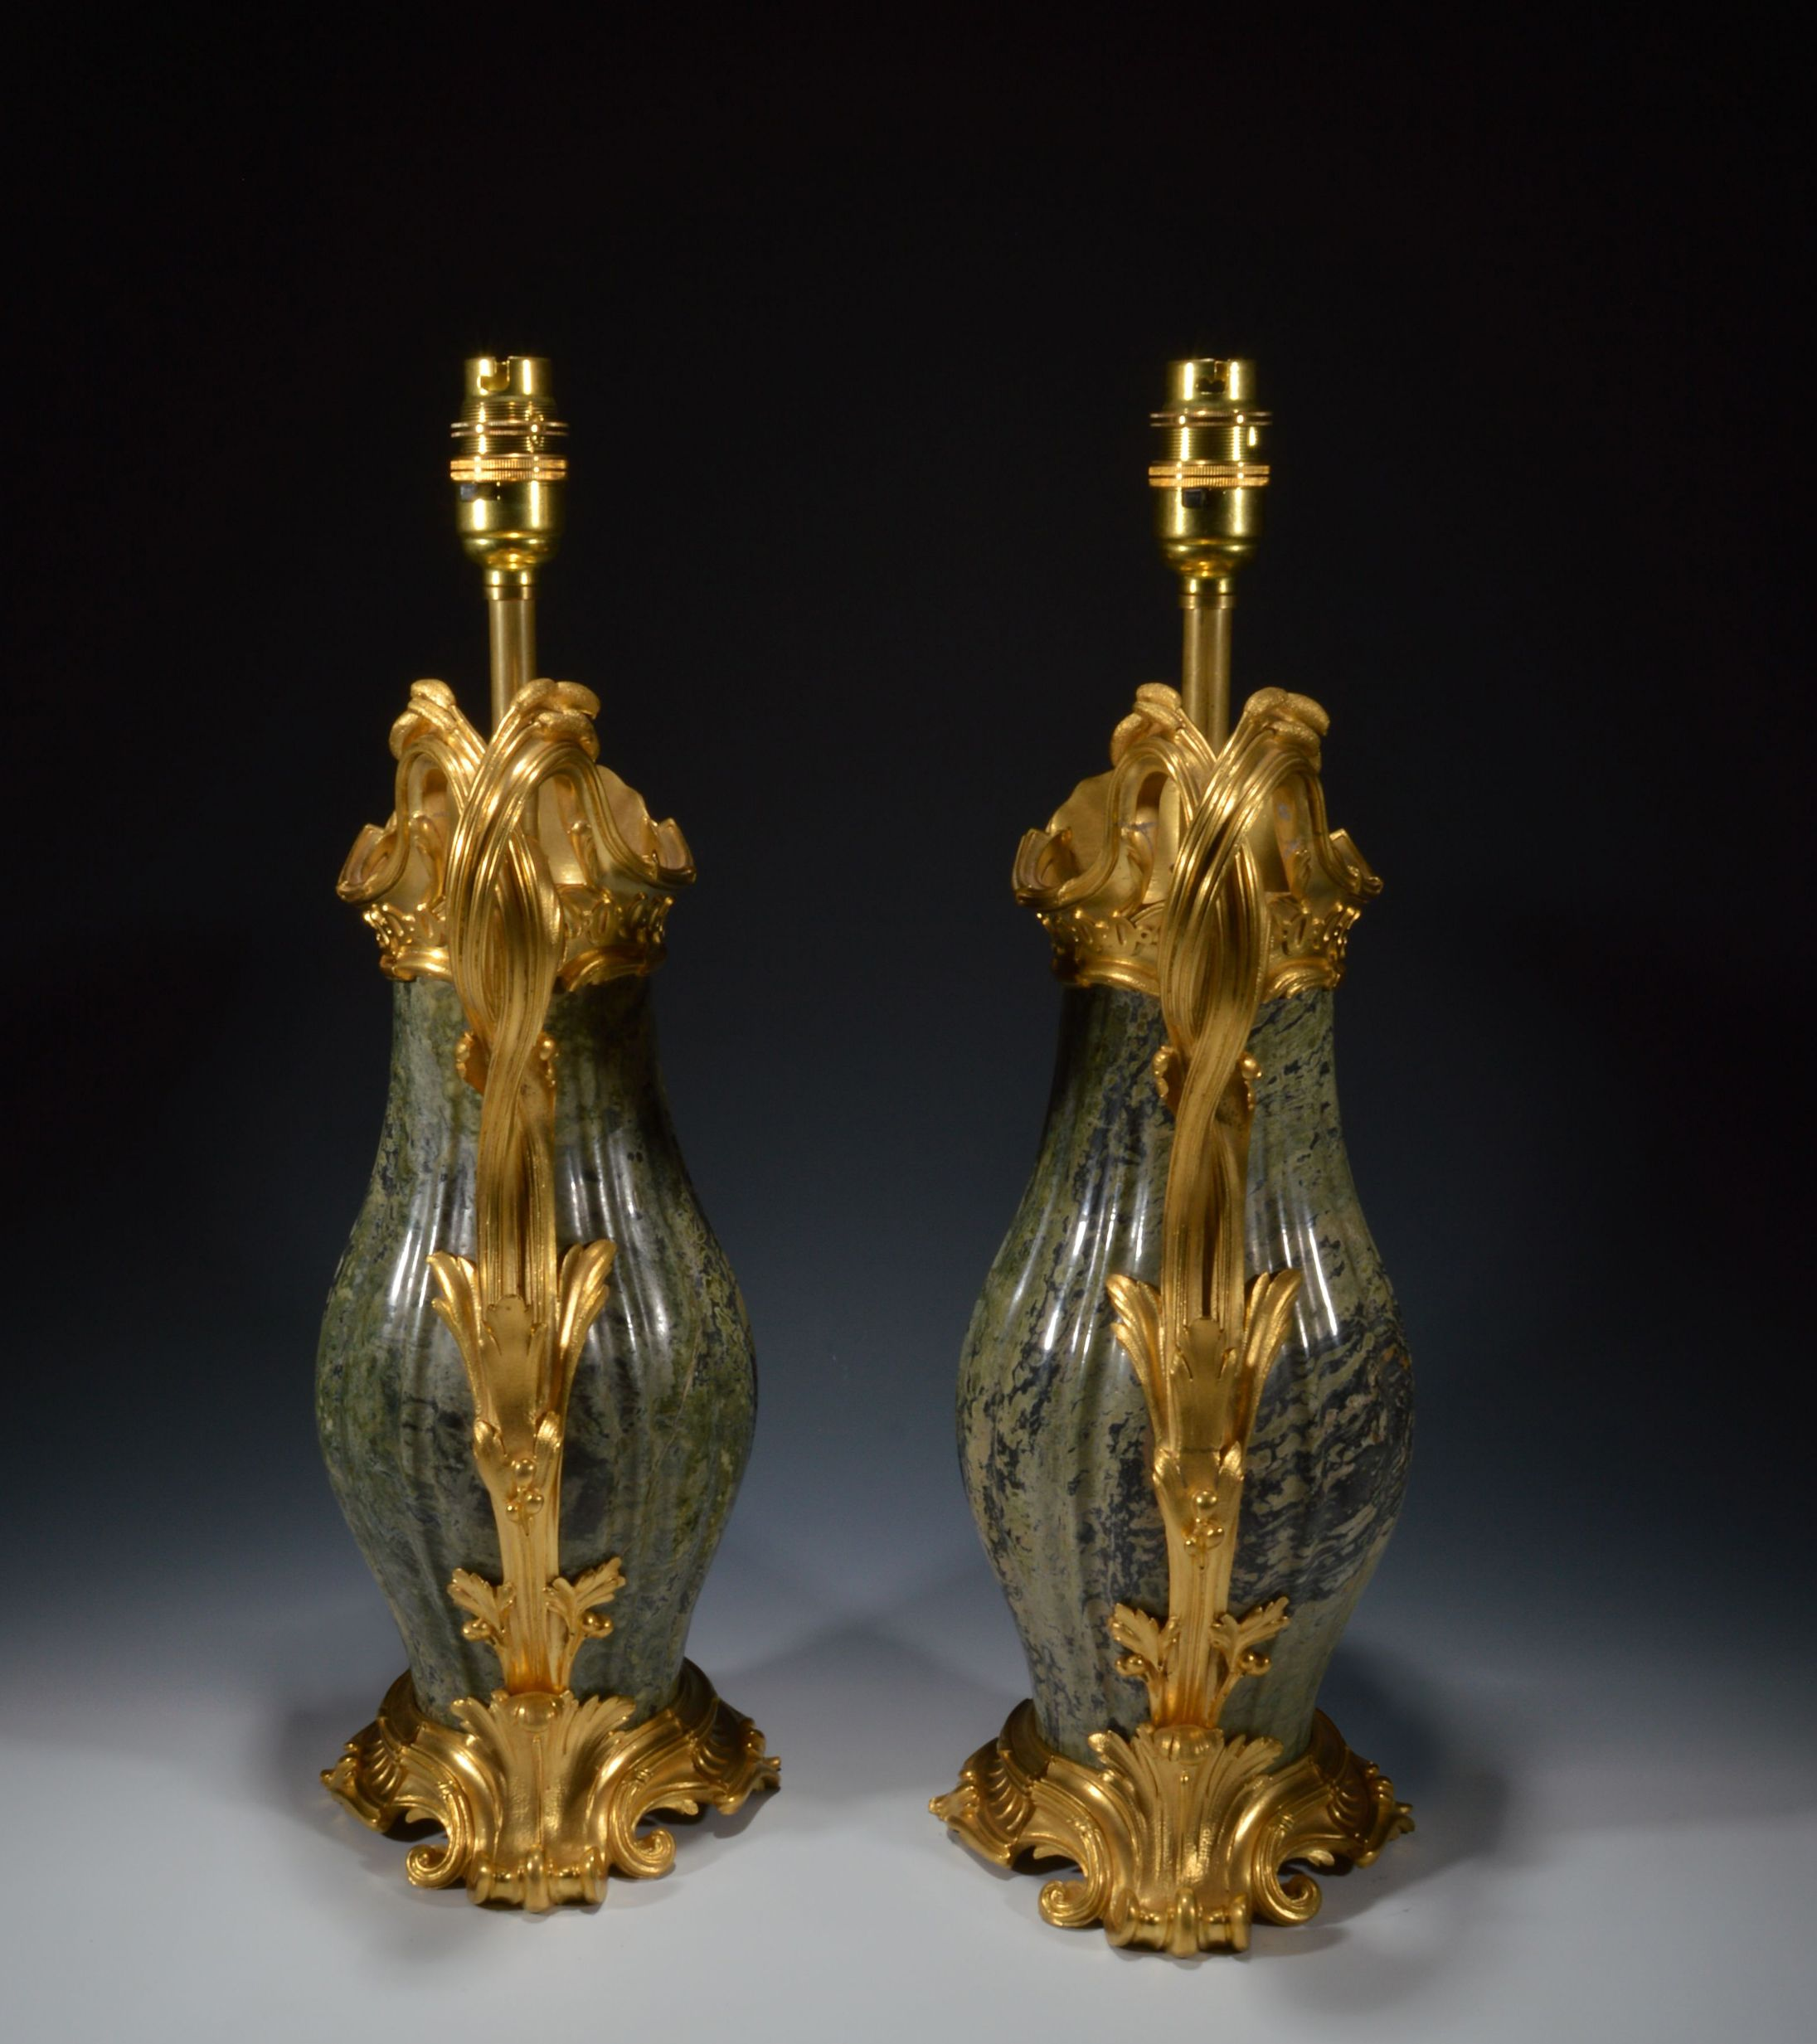 Antique Pair Of French Gilt Bronze And Marble Ewer Lamps